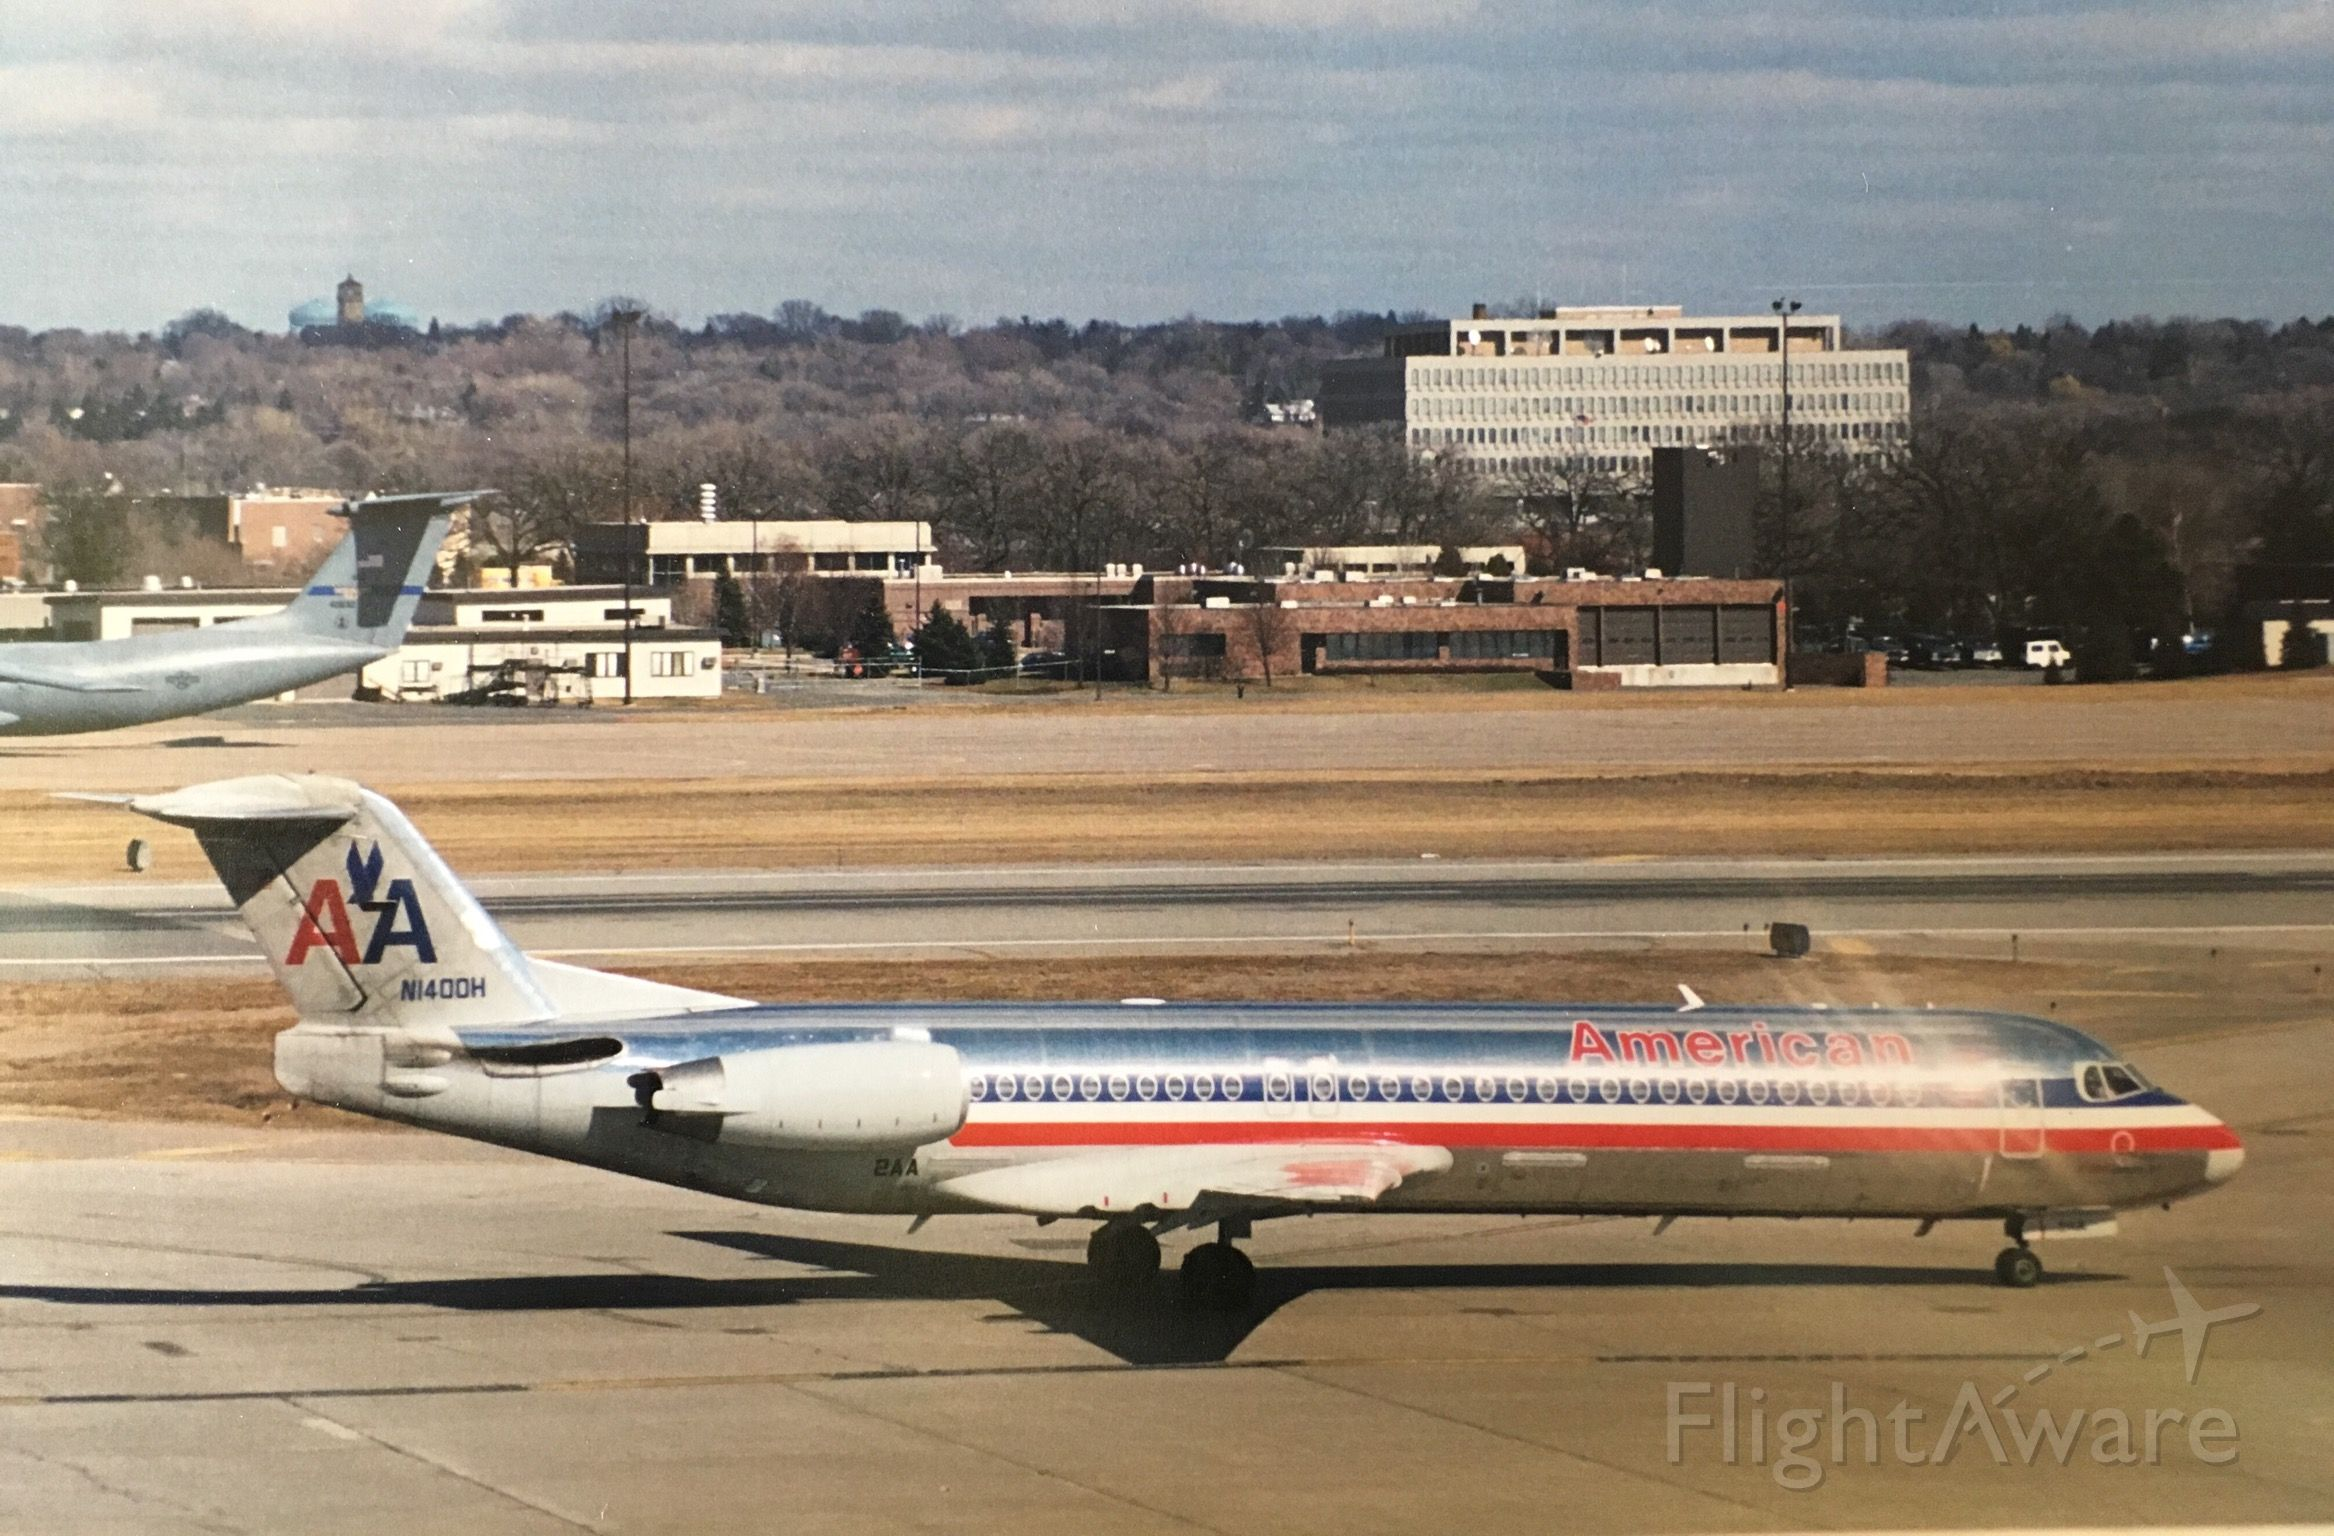 Fokker 100 (N1400H) - This is from around 1998-1999 from the observation deck at MSP.